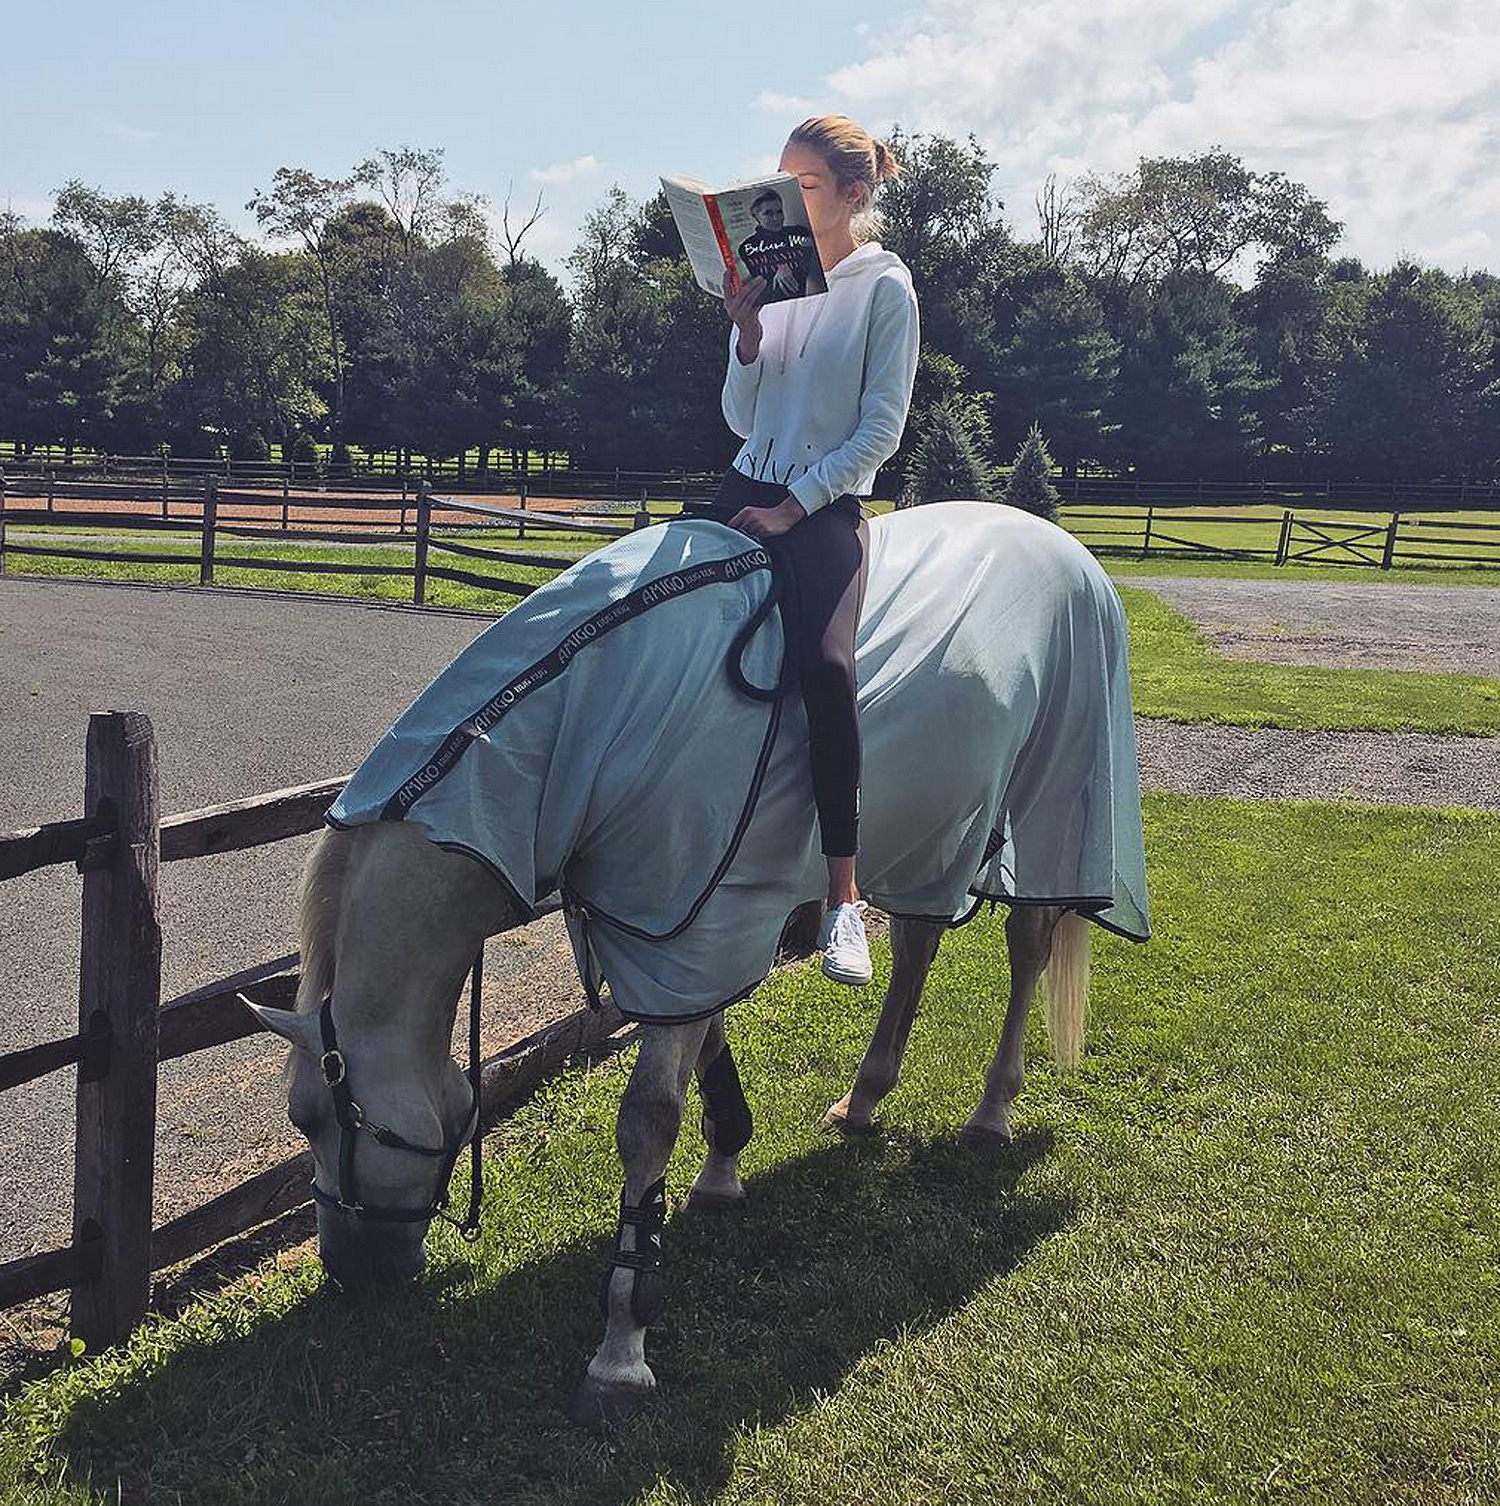 GIGI HADID READS A BOOK WHILE HORSEBACK RIDING